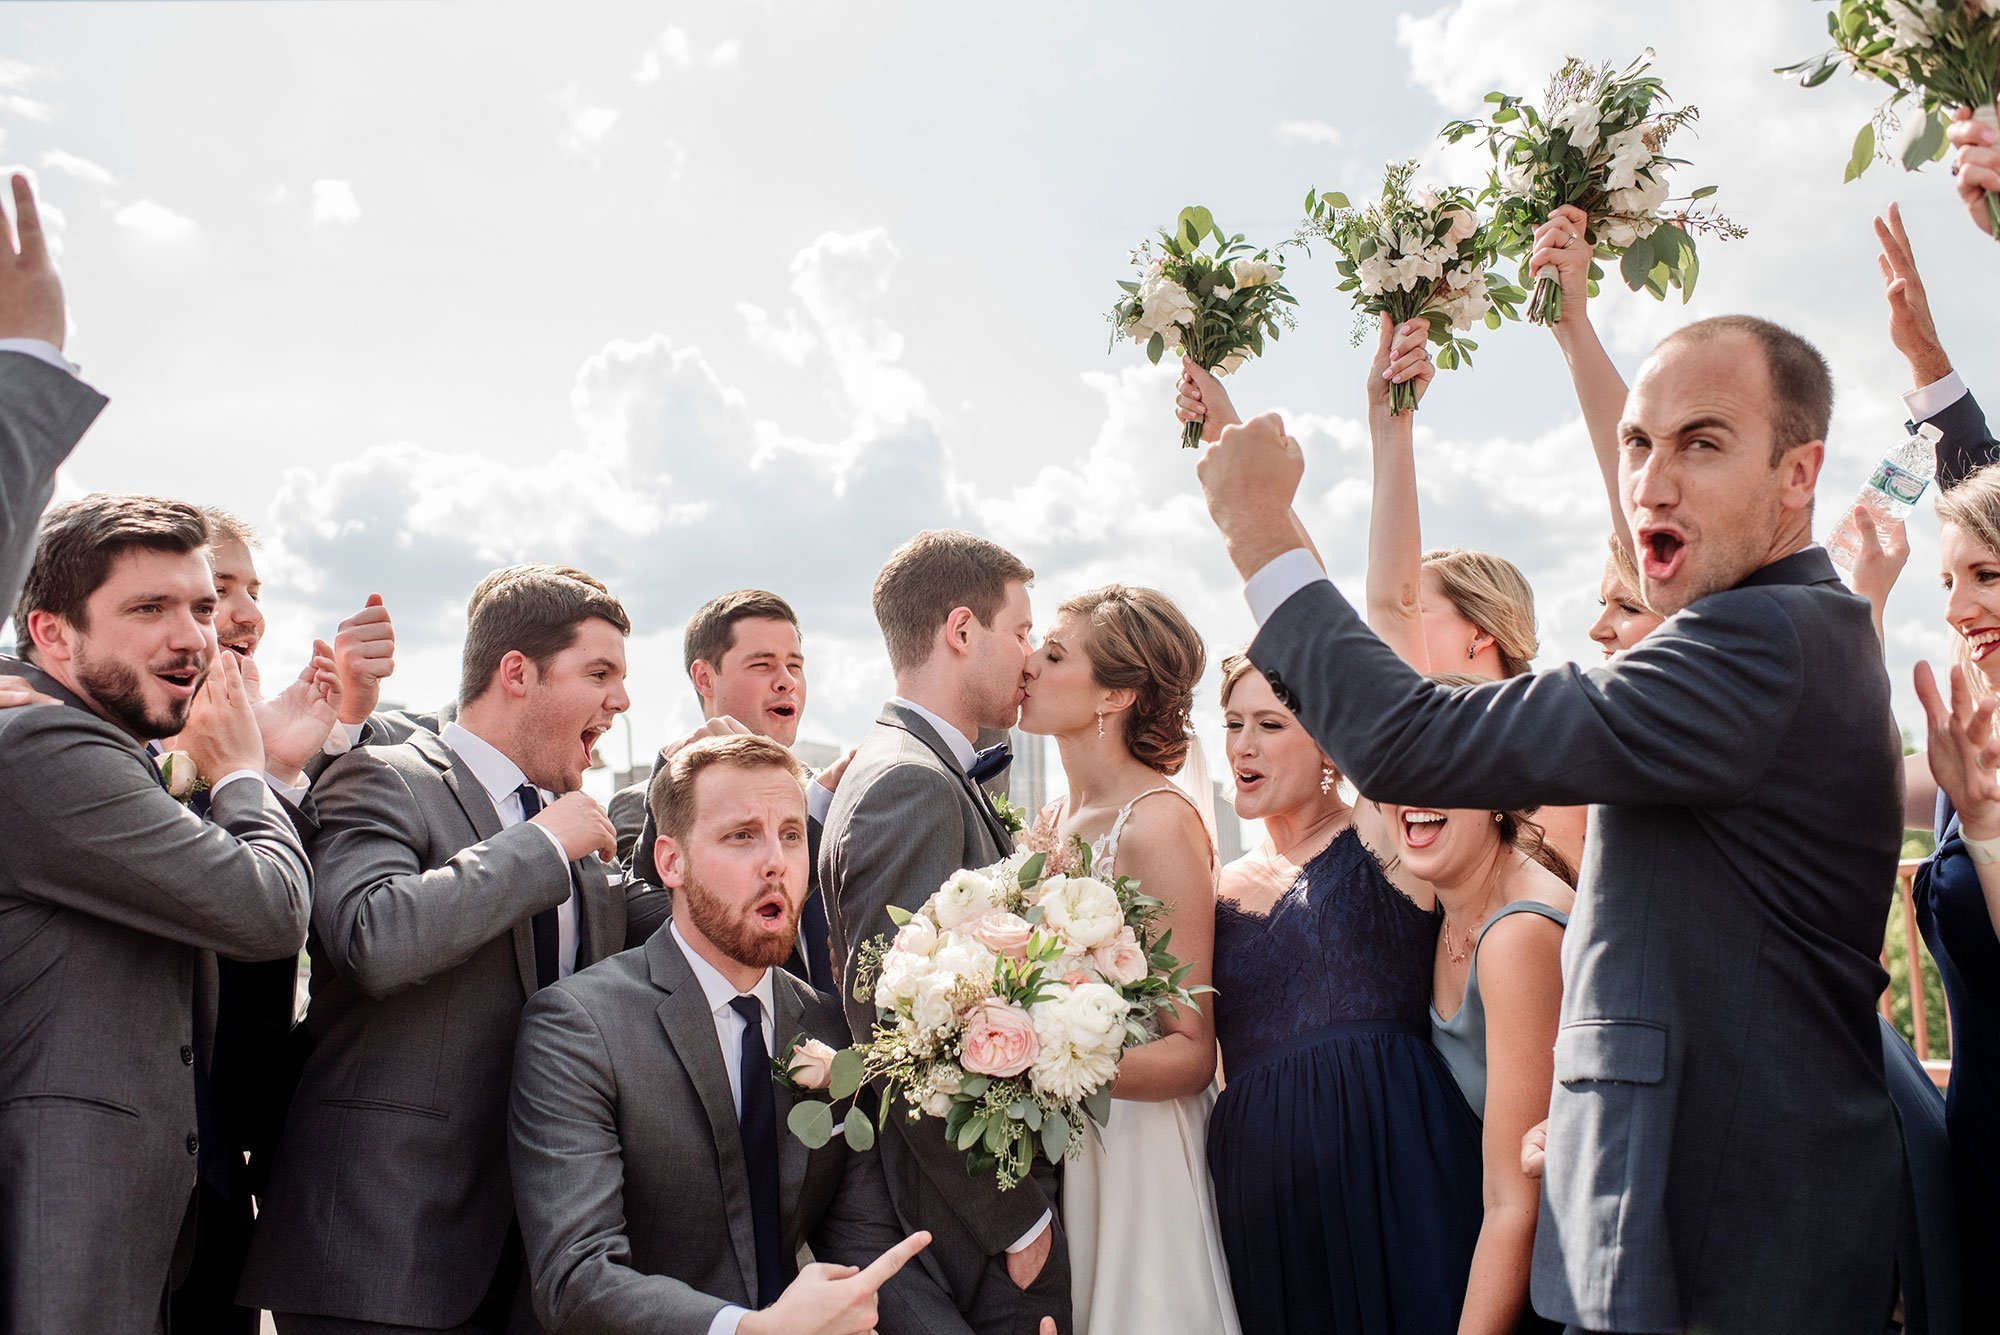 tips for finding a reasonably priced wedding photographer in Minneapolis